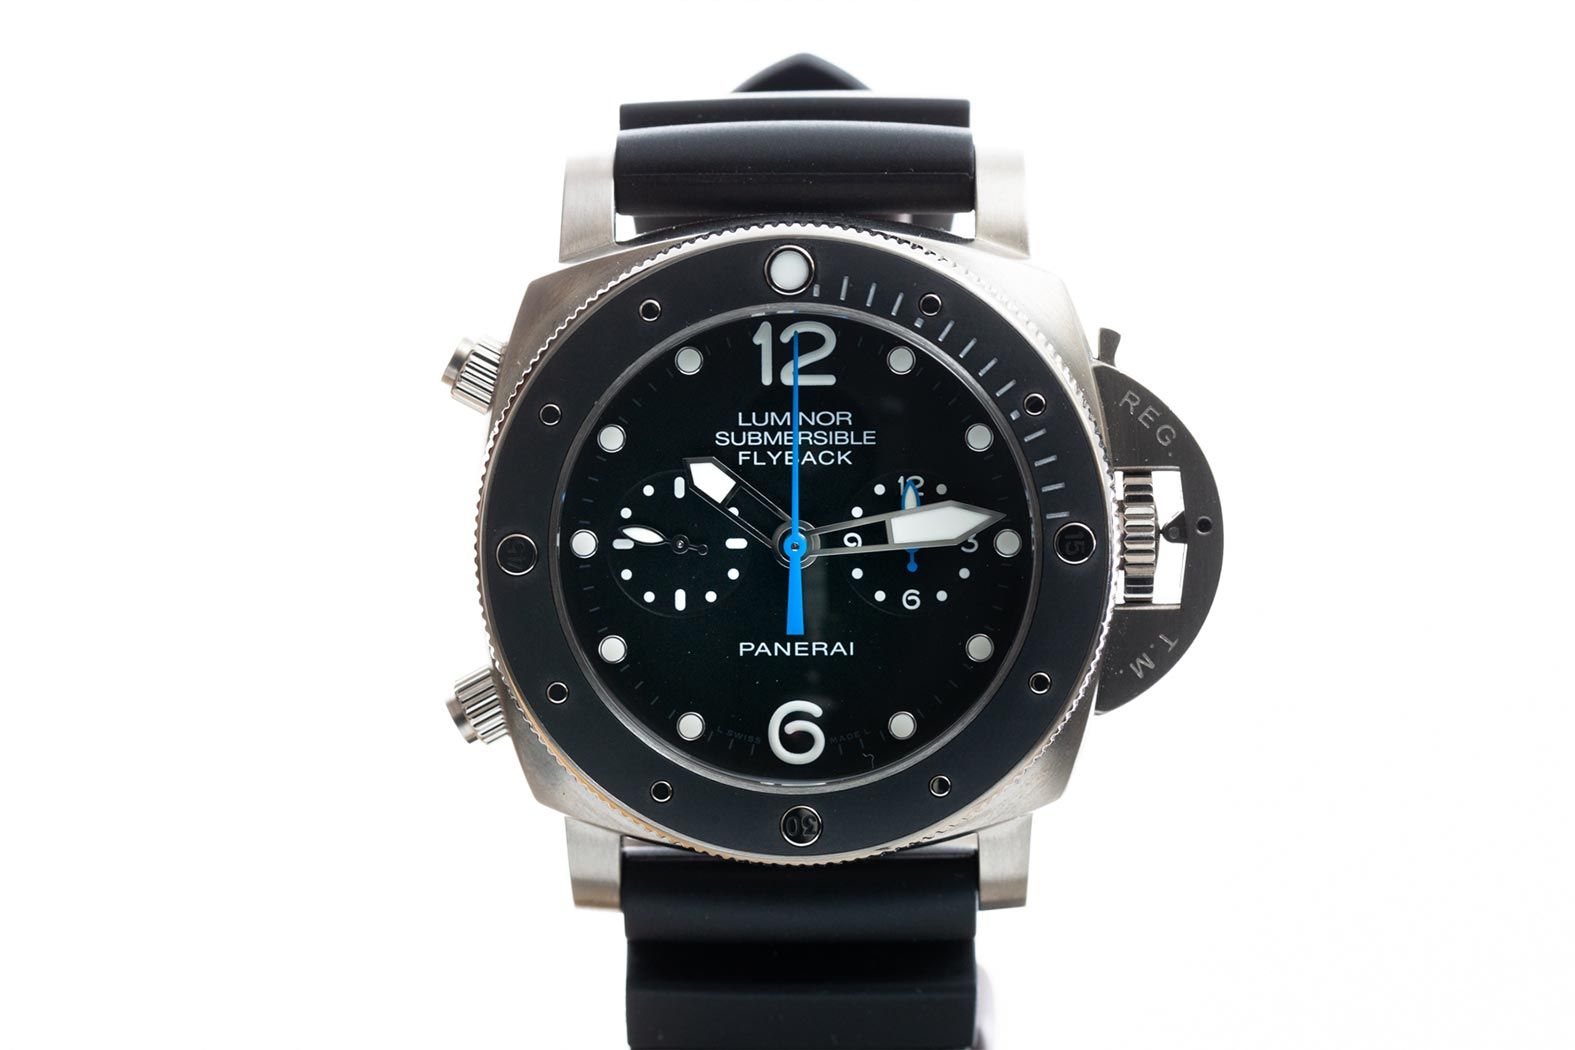 panerai - Luminor submersible flyback